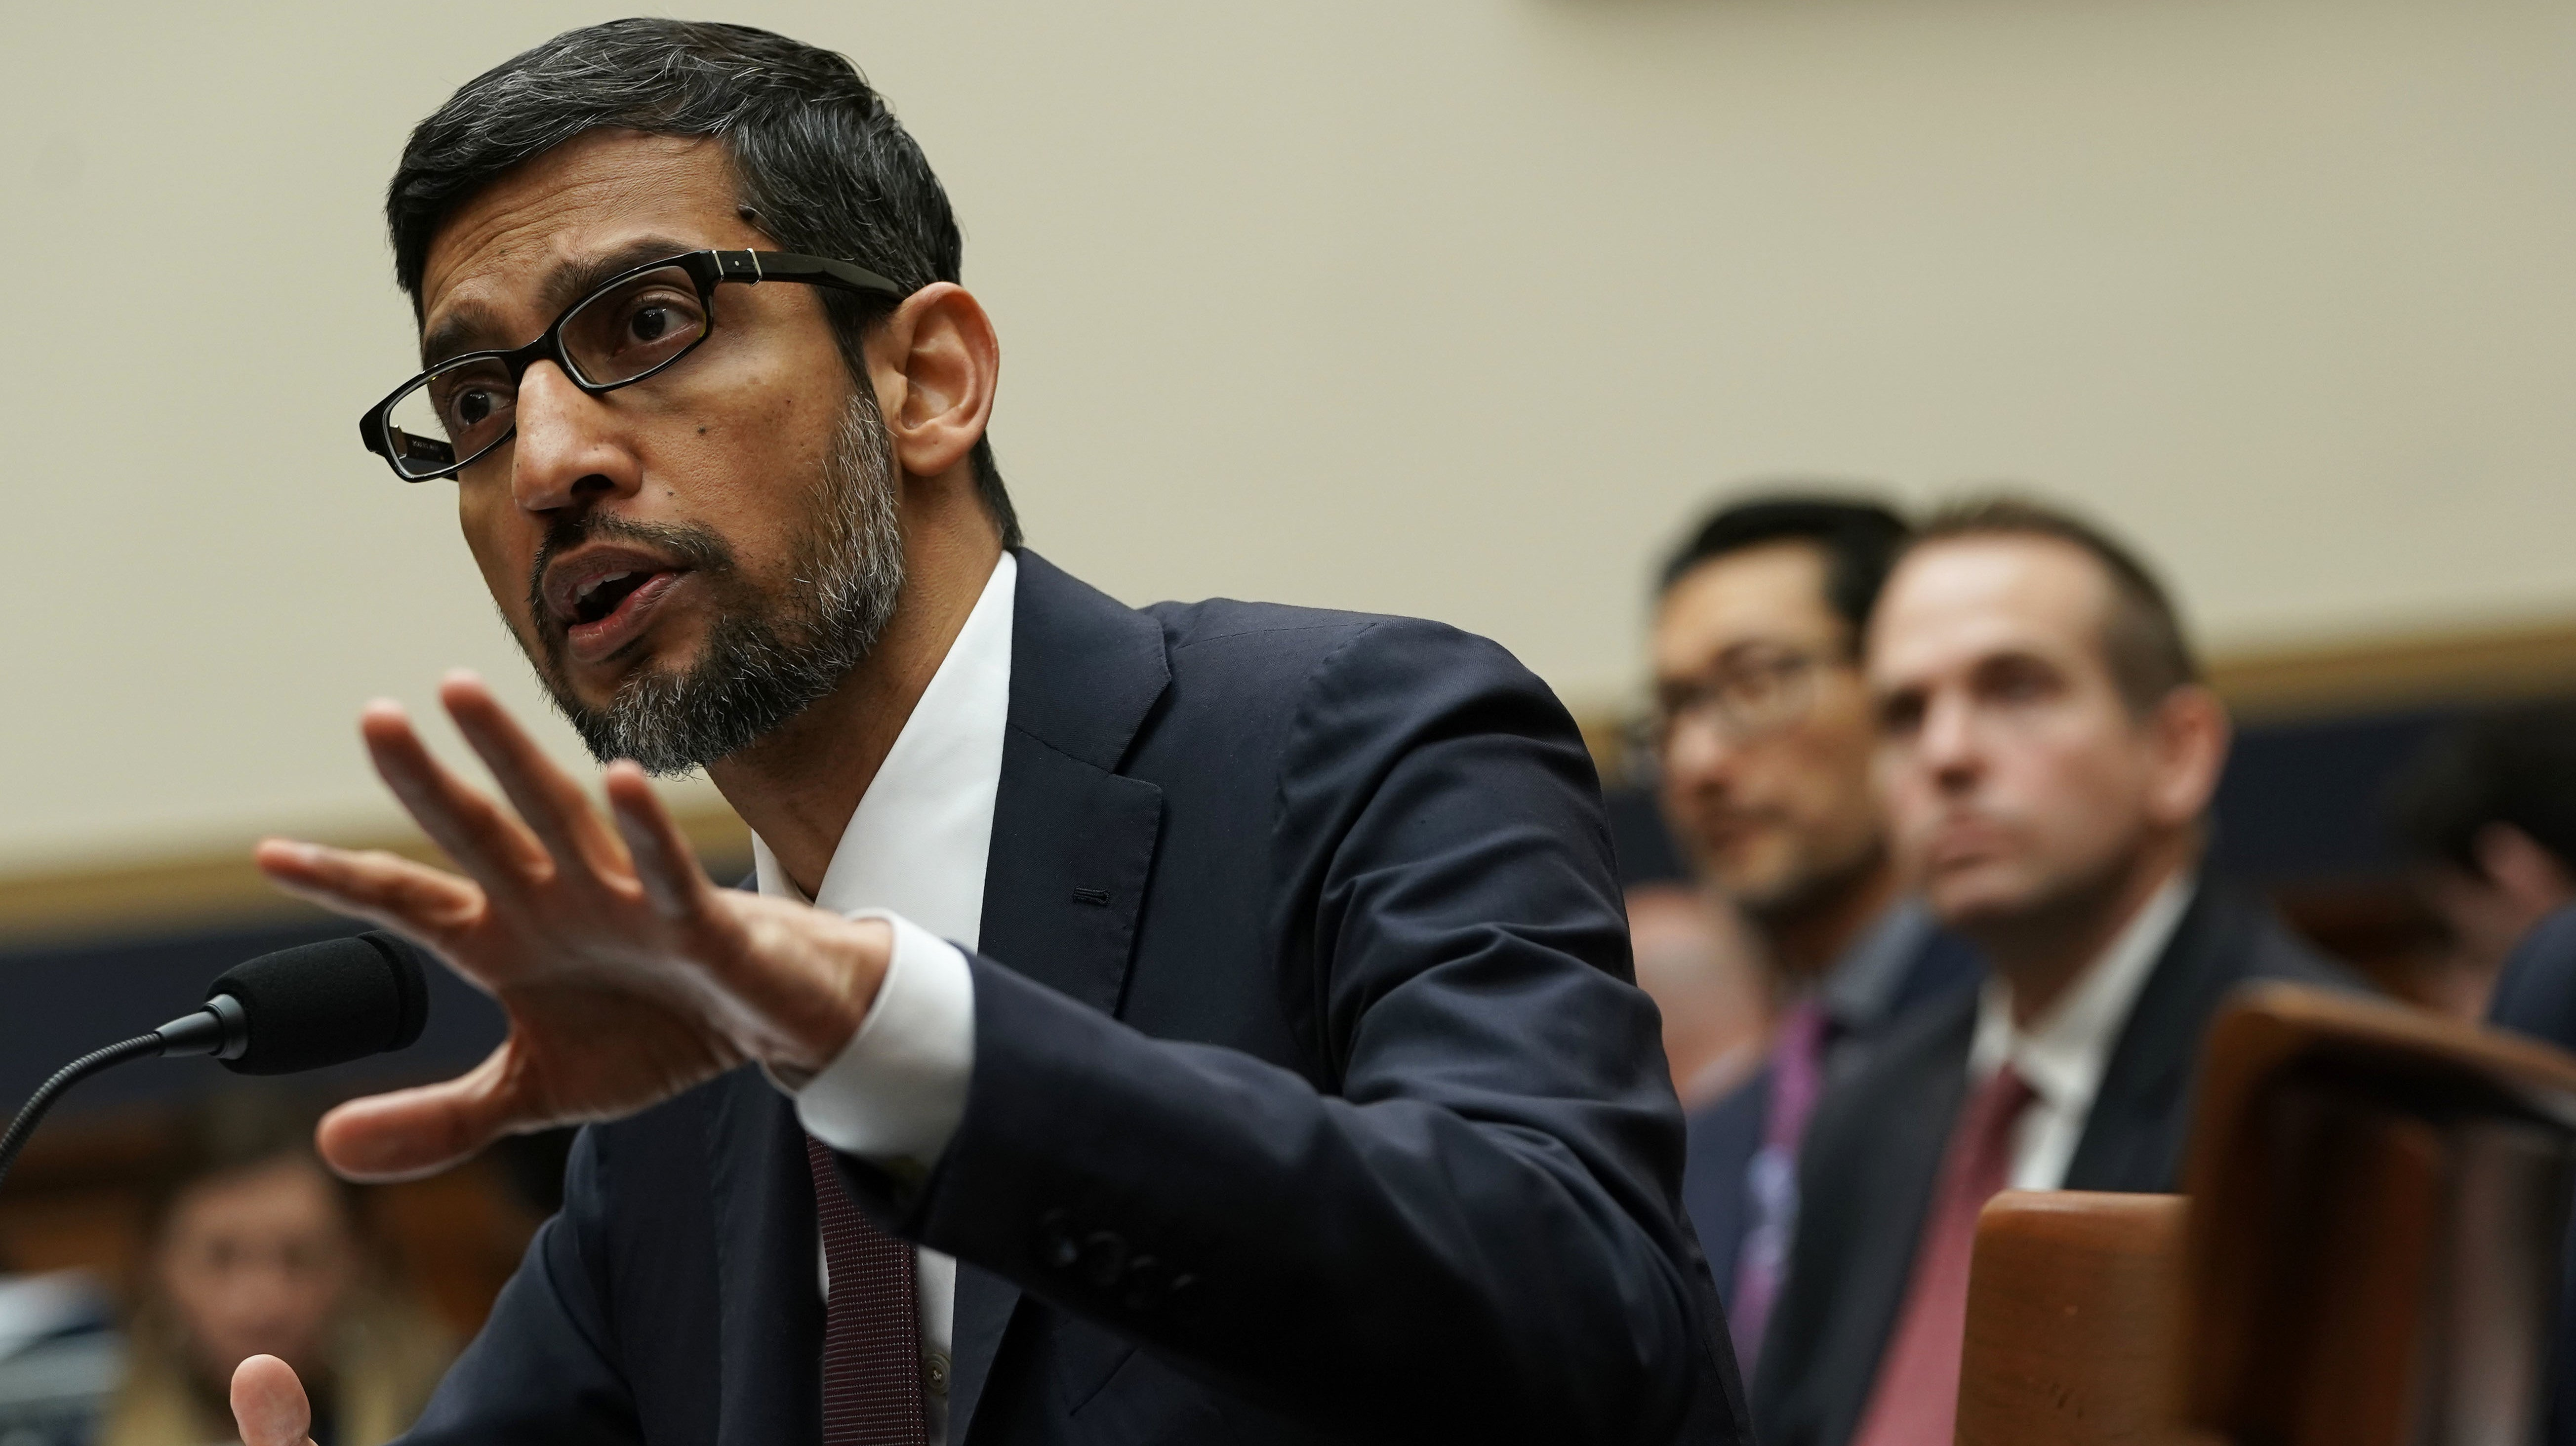 Pentagon Brass Bafflingly Accuses Google Of Providing 'Direct Benefit' To China's Military